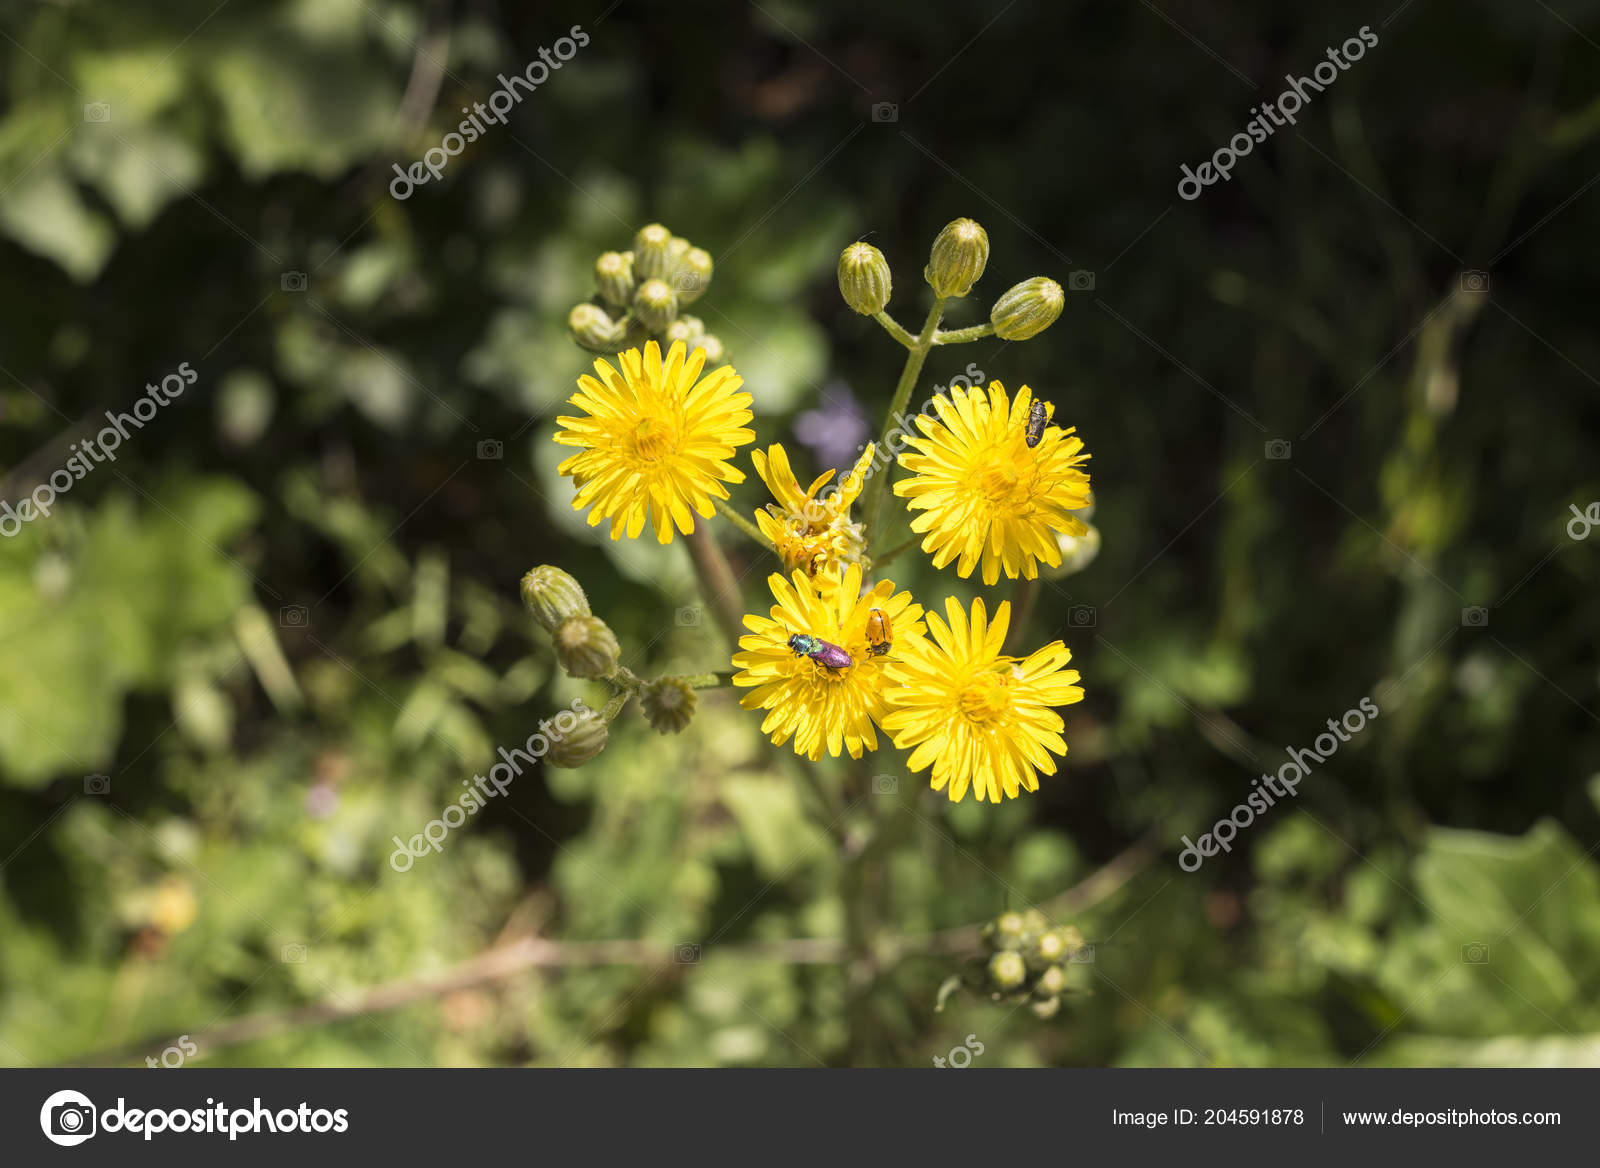 Insects yellow flowers collecting pollen stock photo selugallego insects yellow flowers collecting pollen stock photo mightylinksfo